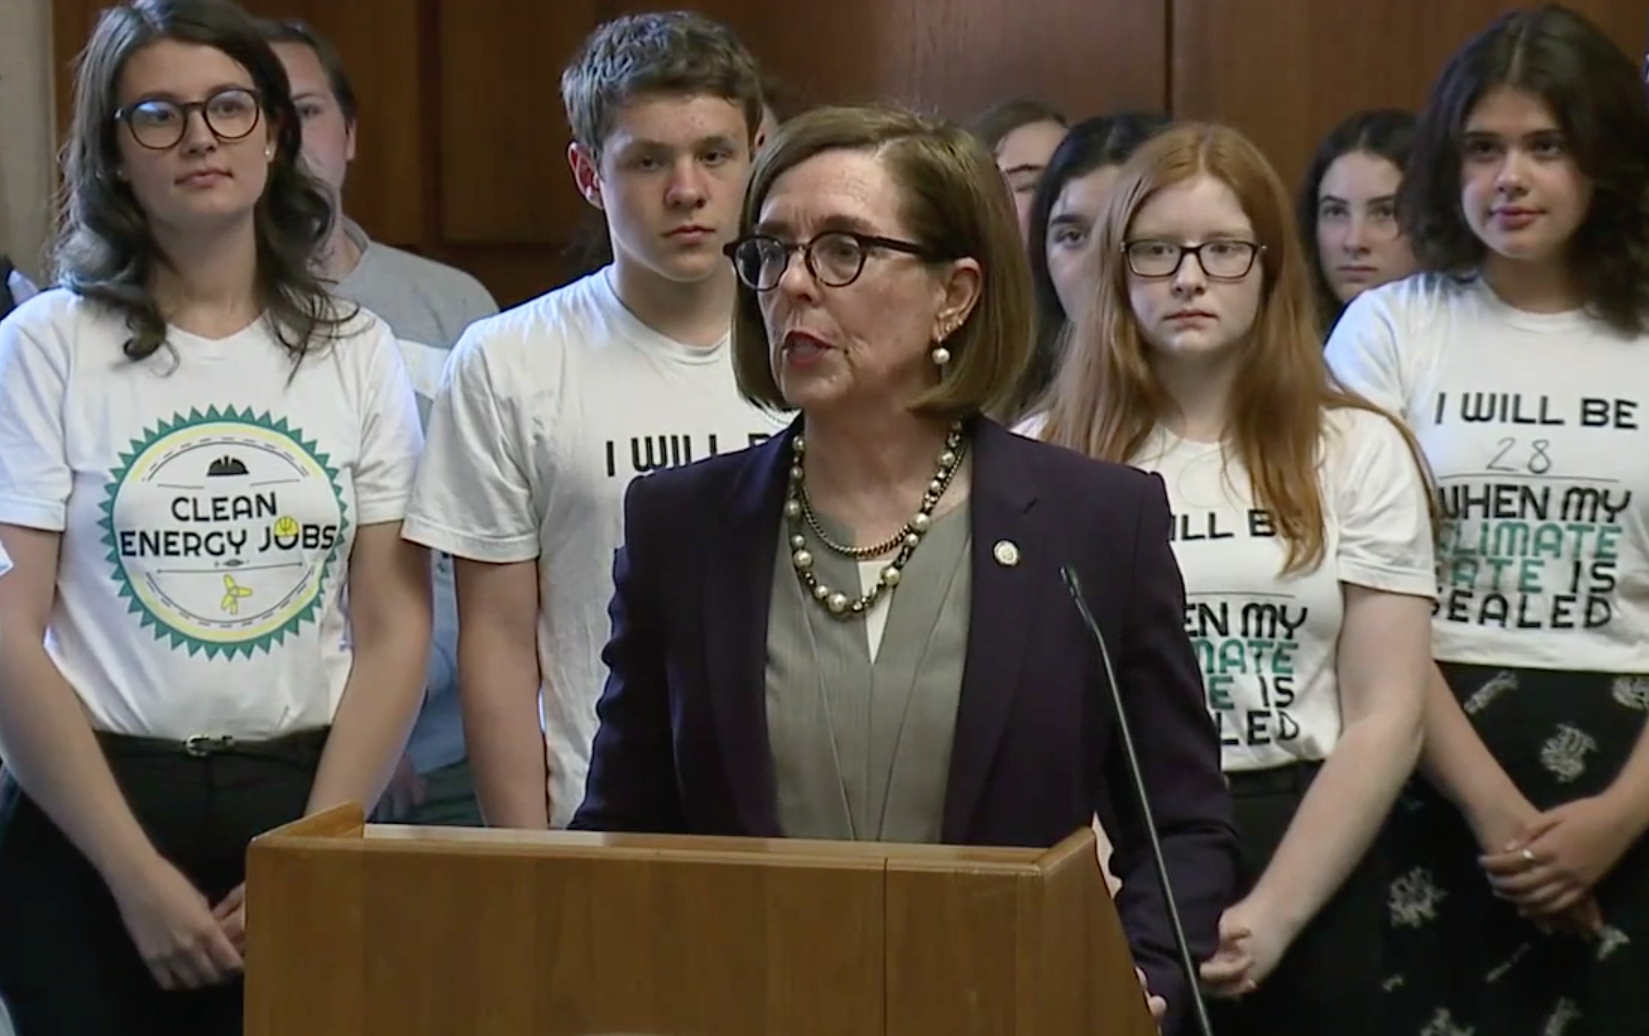 Oregon Gov. Kate Brown lamented that Republicans fled the state to avoid voting on a historic climate change bill during a press conference on June 20, 2019.